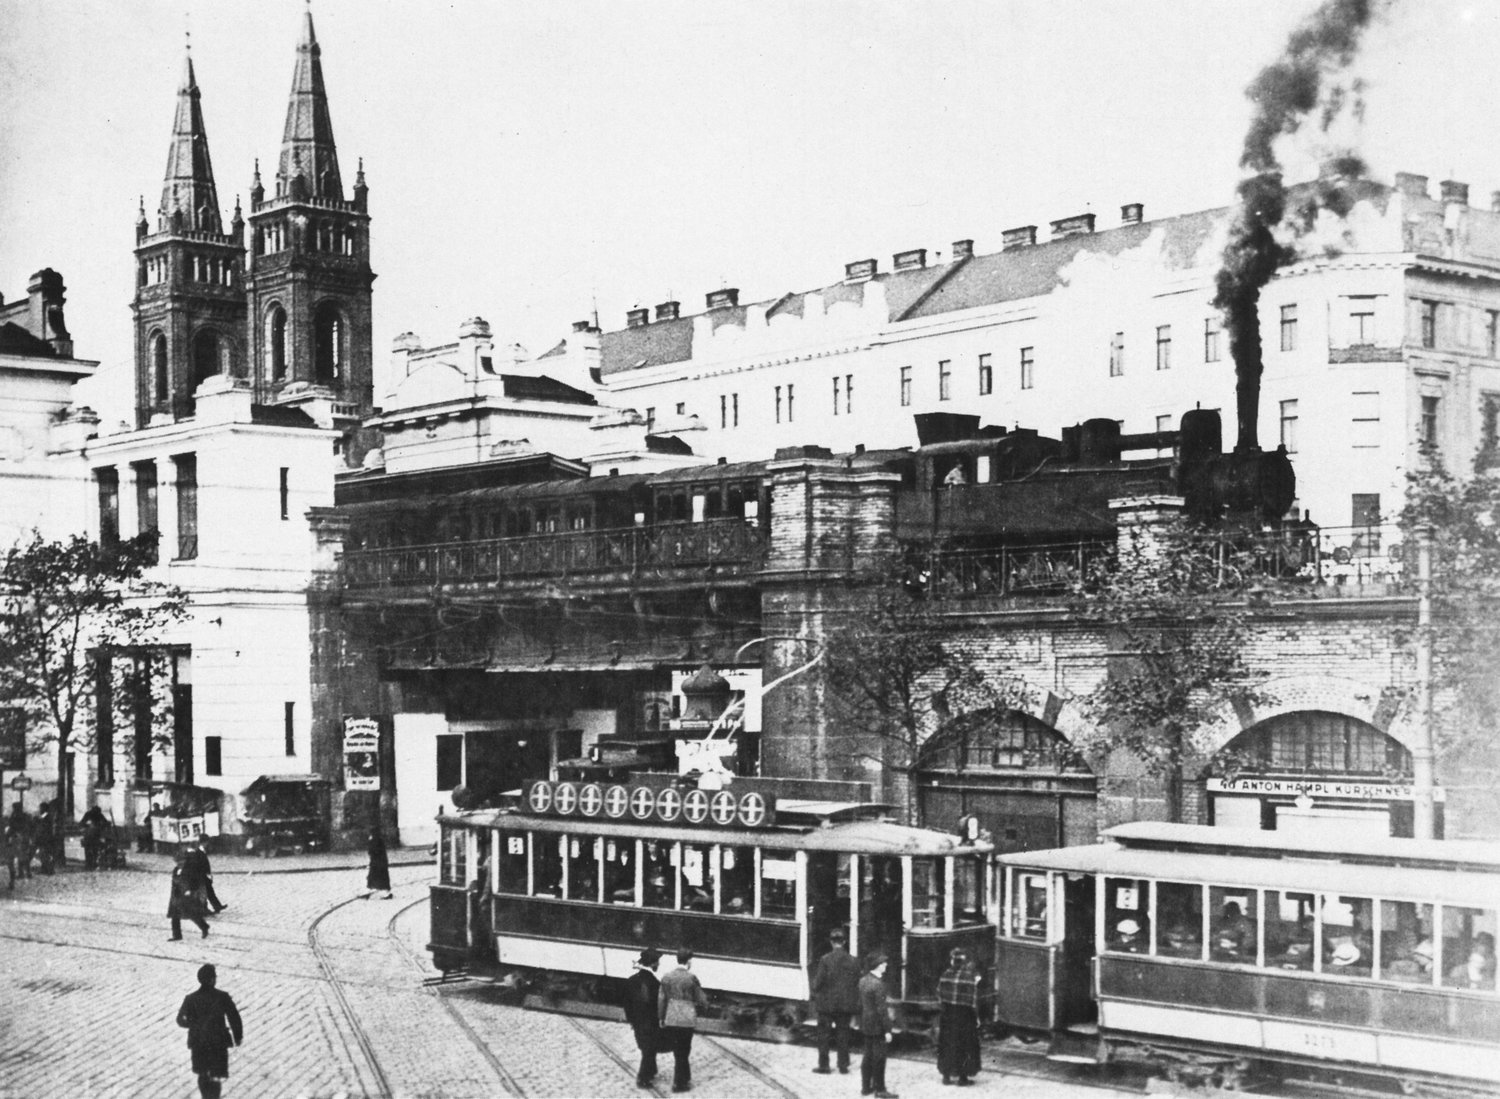 The Vienna Stadbahn before electrification, around 1910. Wikimedia/ public domain.